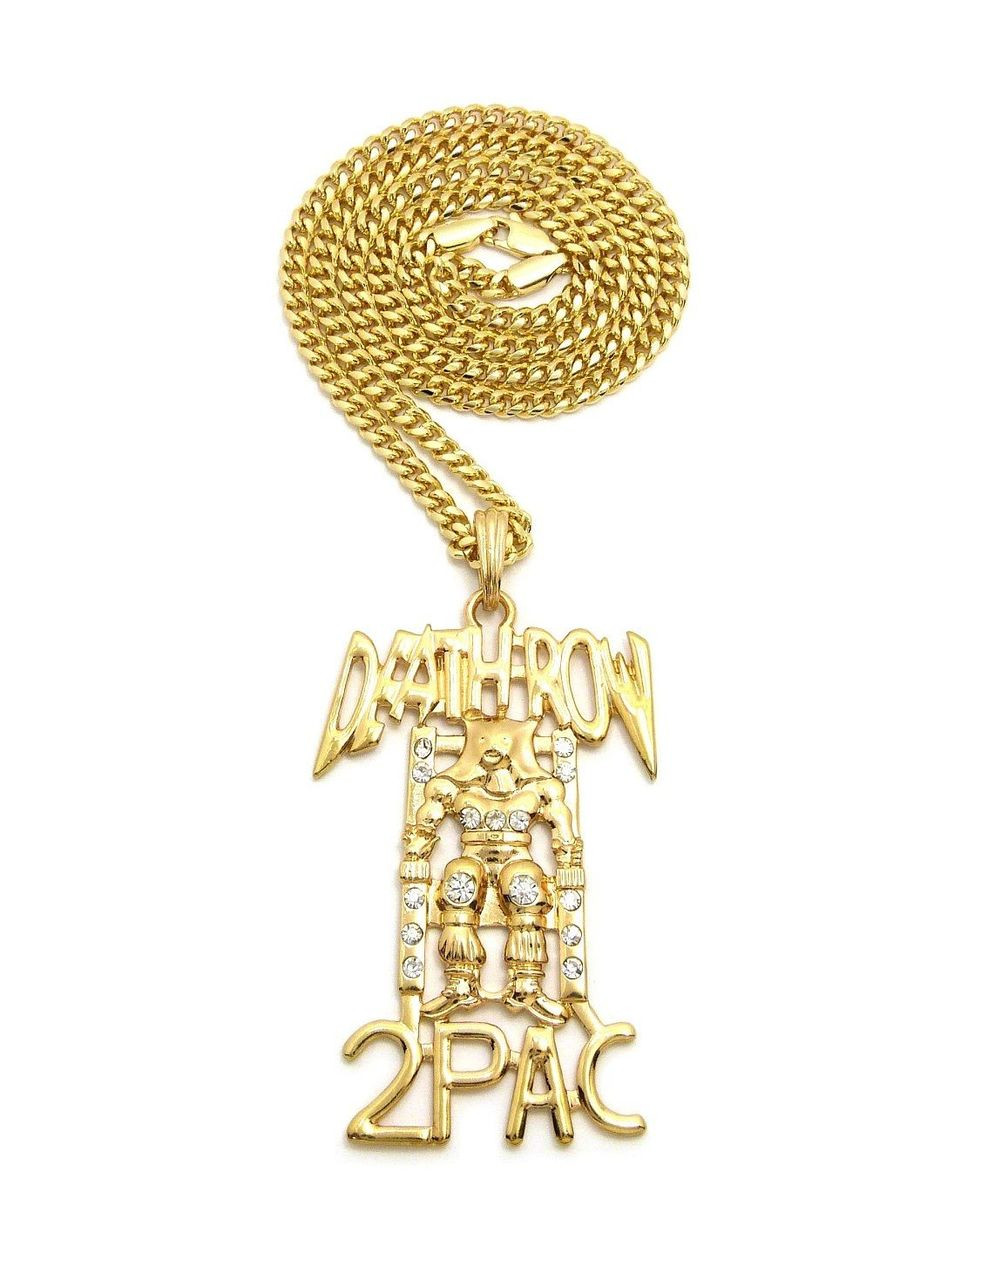 New deathrow 2pac pendant 27 4mm cuban chain the black bat new deathrow 2pac pendant 27 4mm cuban aloadofball Choice Image